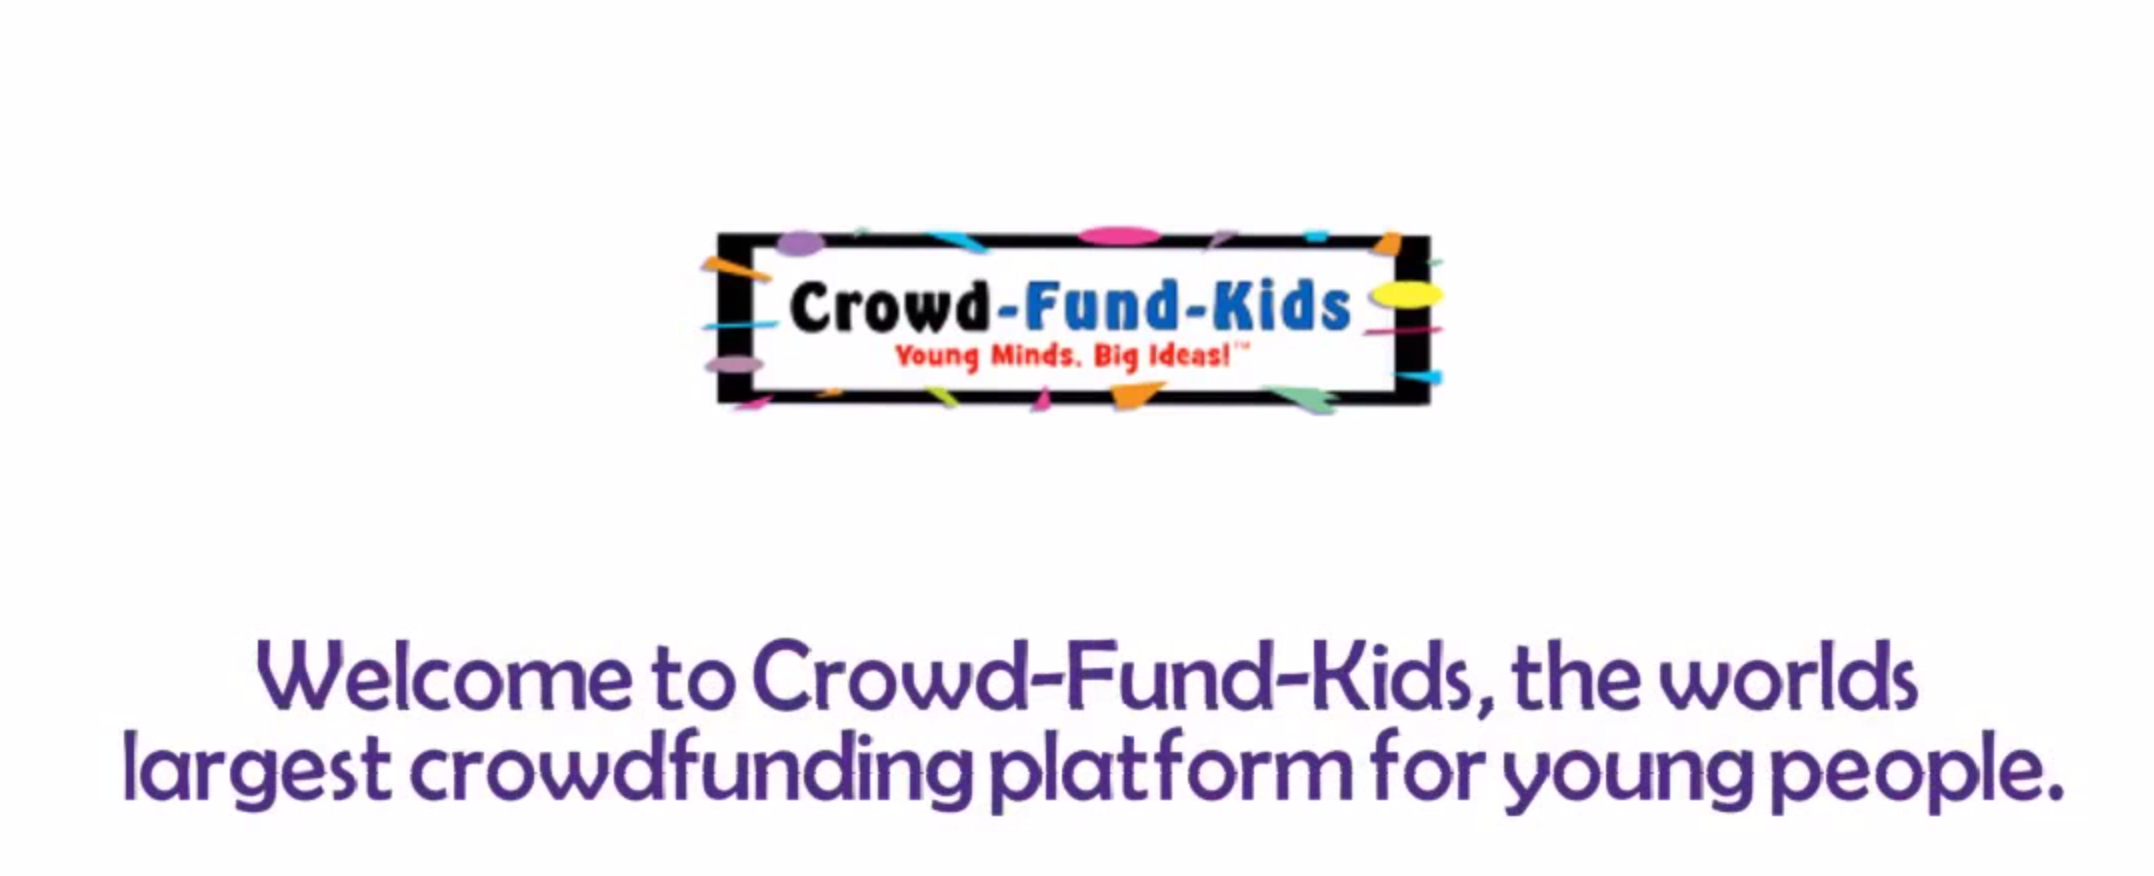 Crowd-Fund-Kids